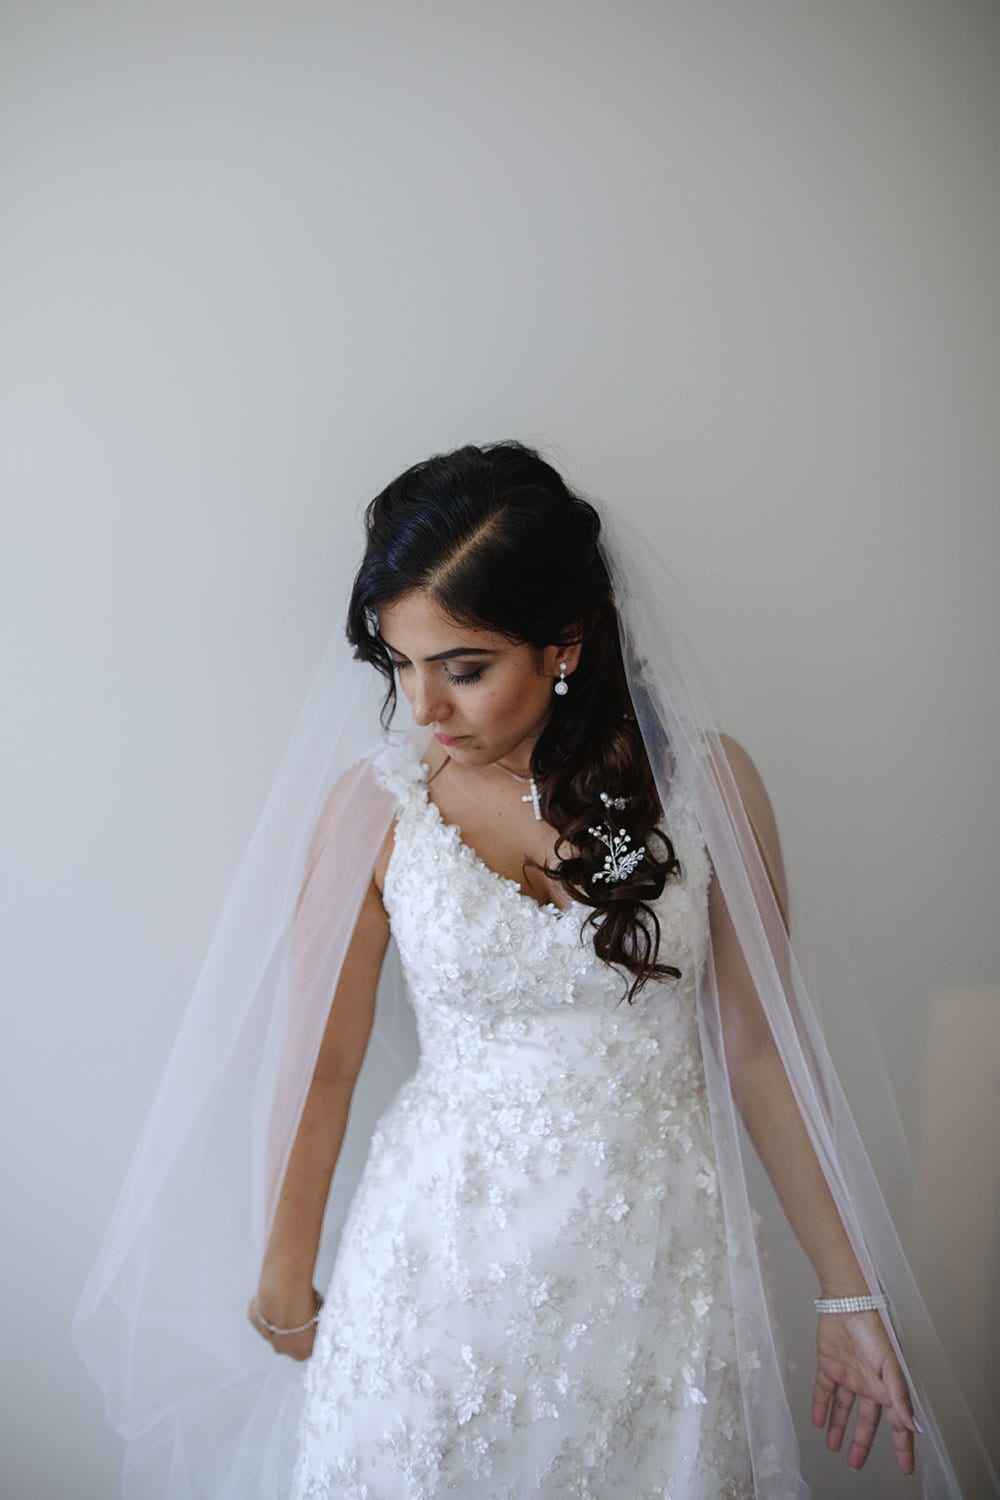 Real Weddings | Vinka Design | Real Brides Wearing Vinka Gowns | Ayesha and Nick - Ayesha portrait in bespoke gown with gorgeous beaded floral lace, which fitted her to perfection.